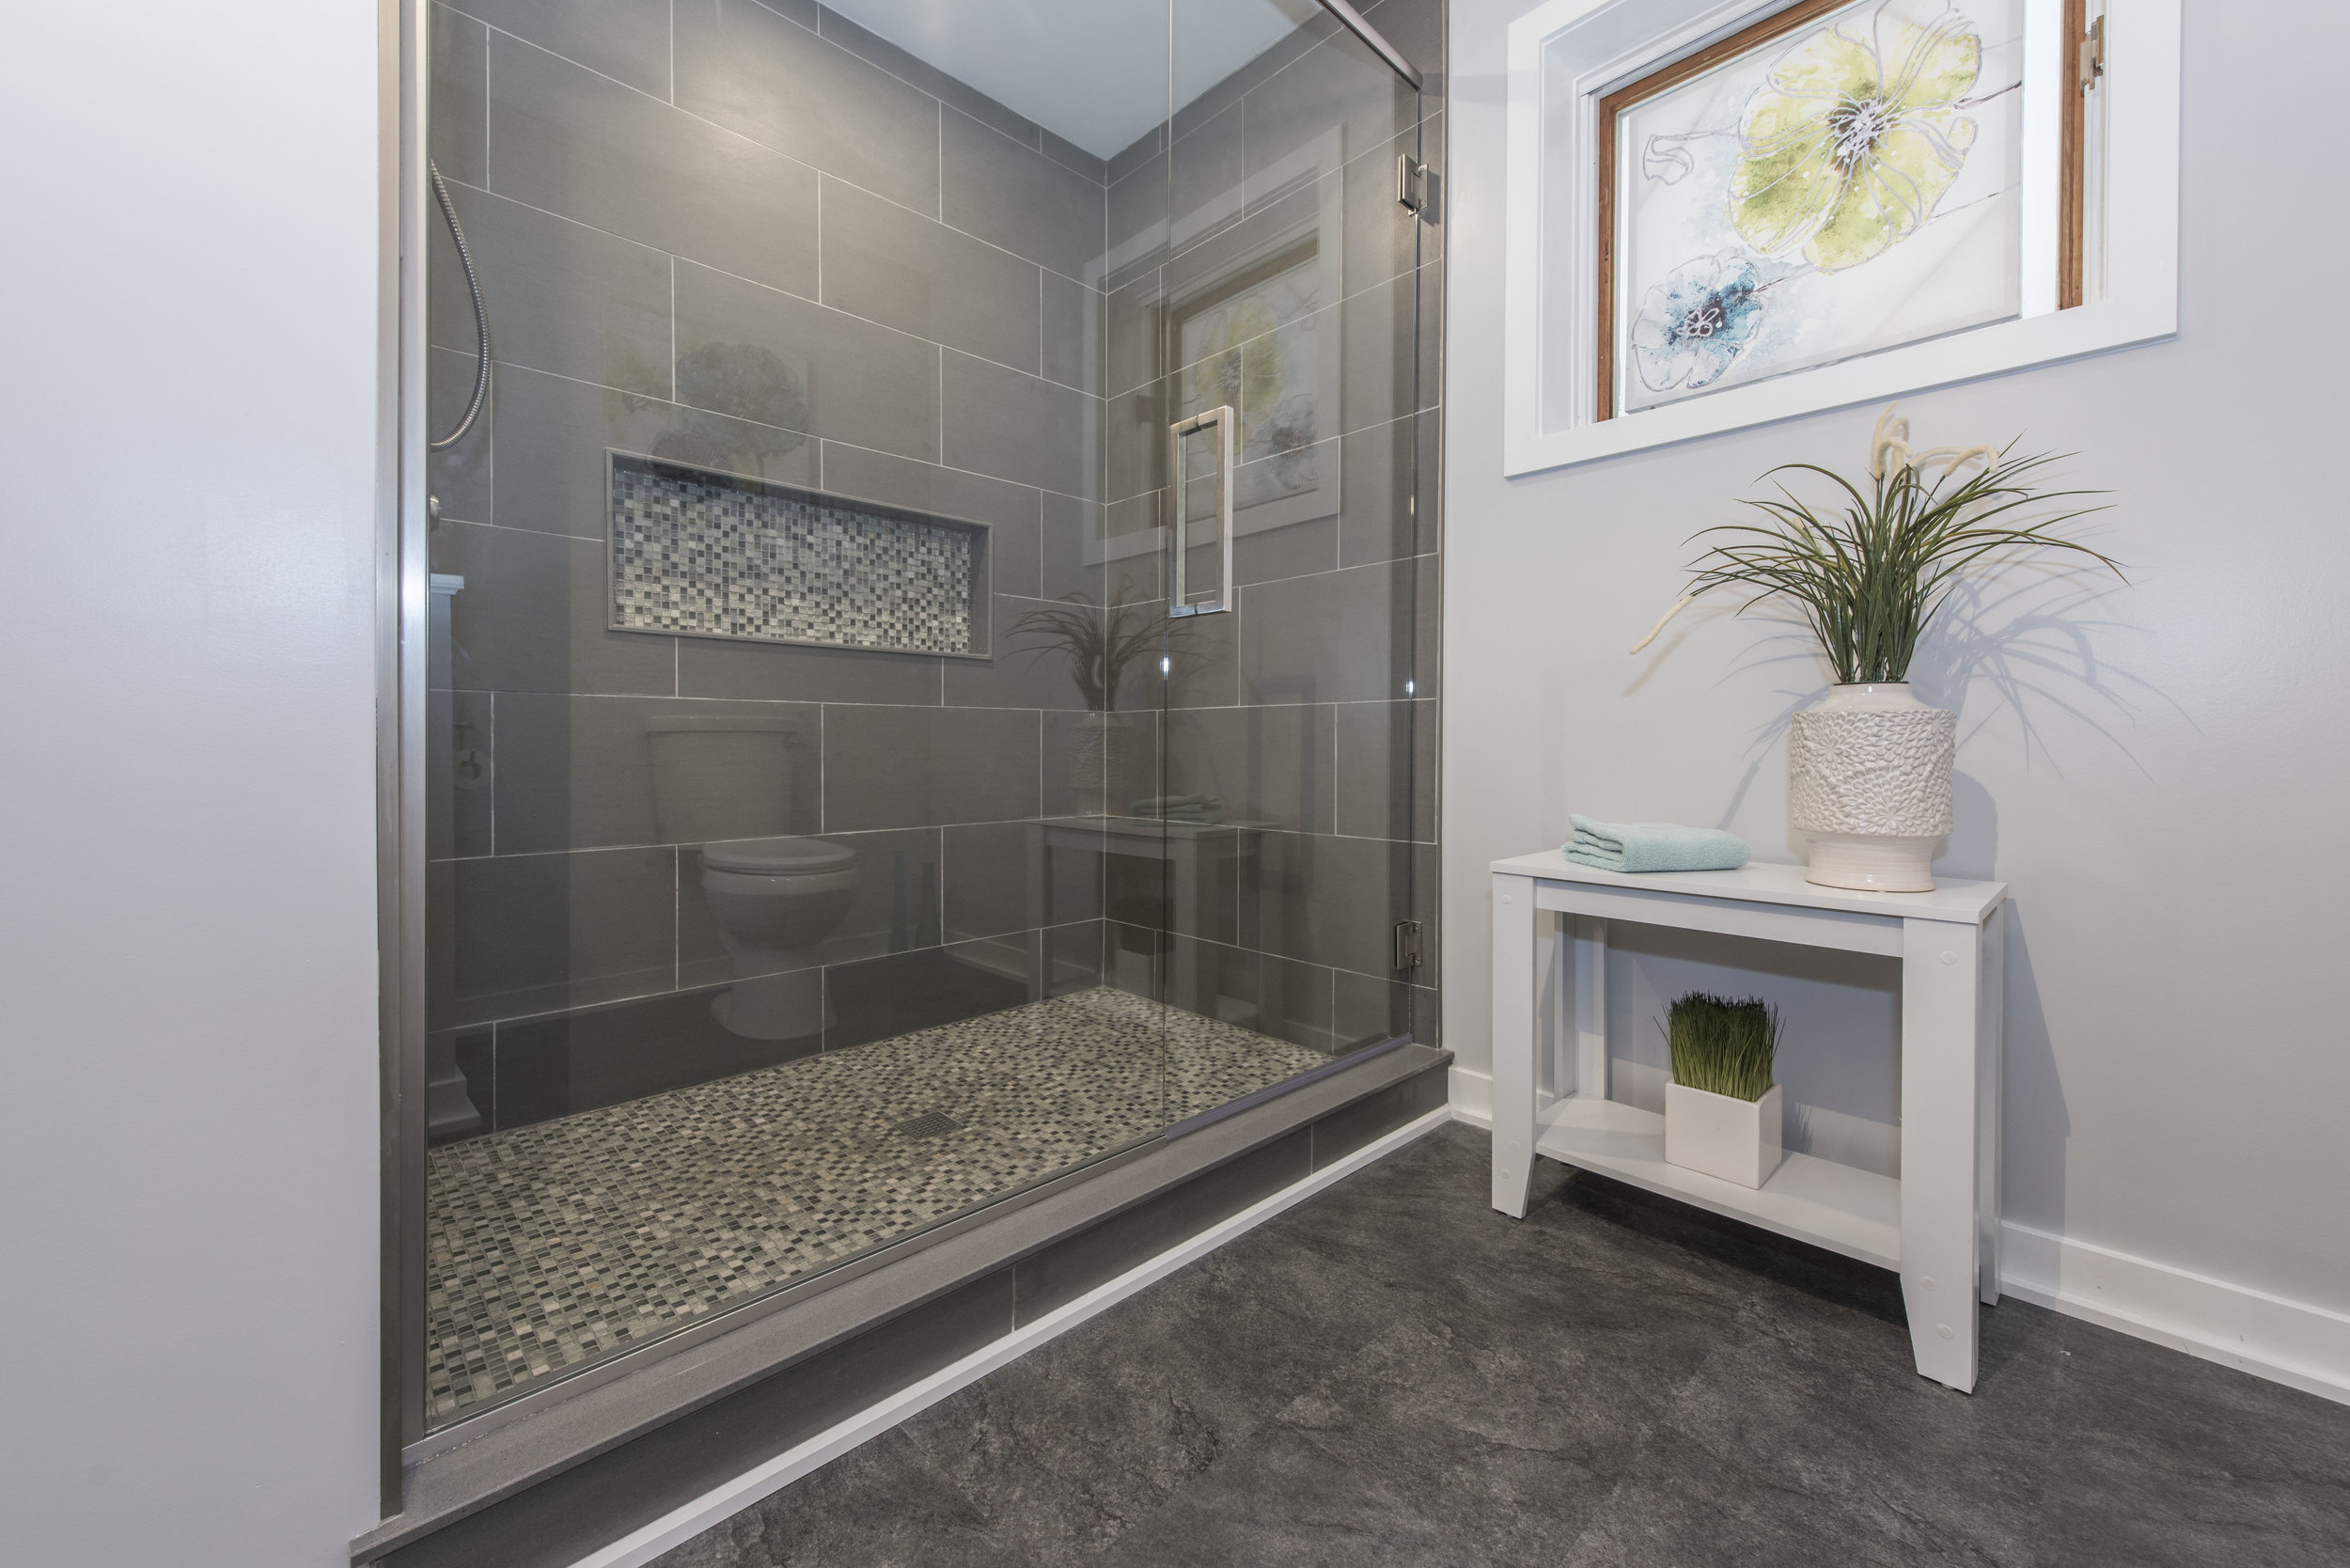 Bathrooms - We can convert any old bathroom into a relaxing retreat with endless possibilities for design and functionality. We work with a number of local suppliers to provide a vast selection of products and materials you can use to create your dream bathroom!